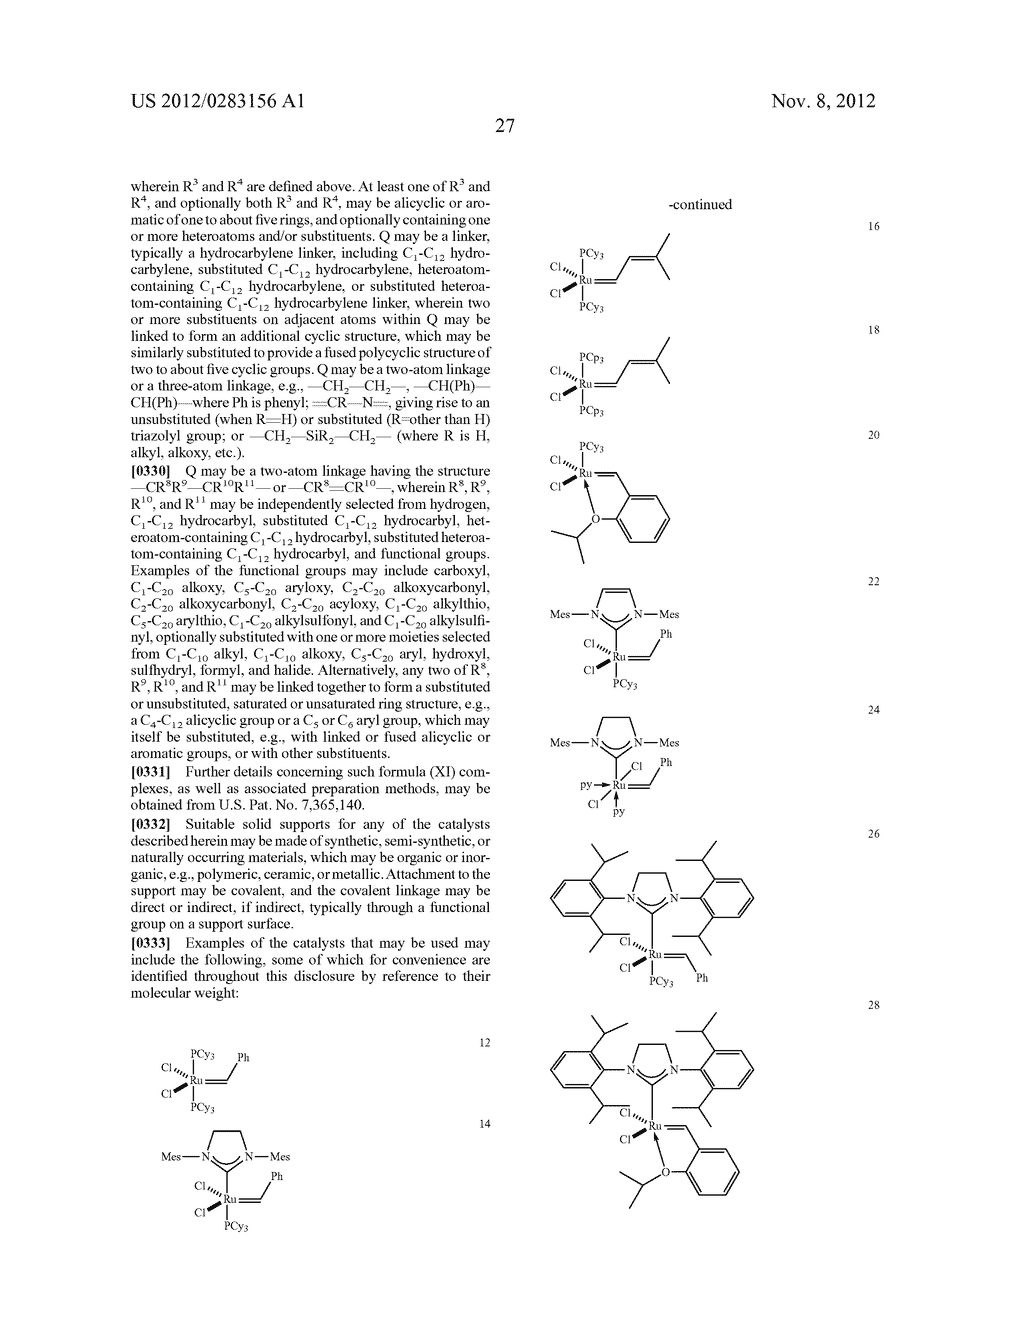 FUNCTIONALIZED MONOMERS - diagram, schematic, and image 30